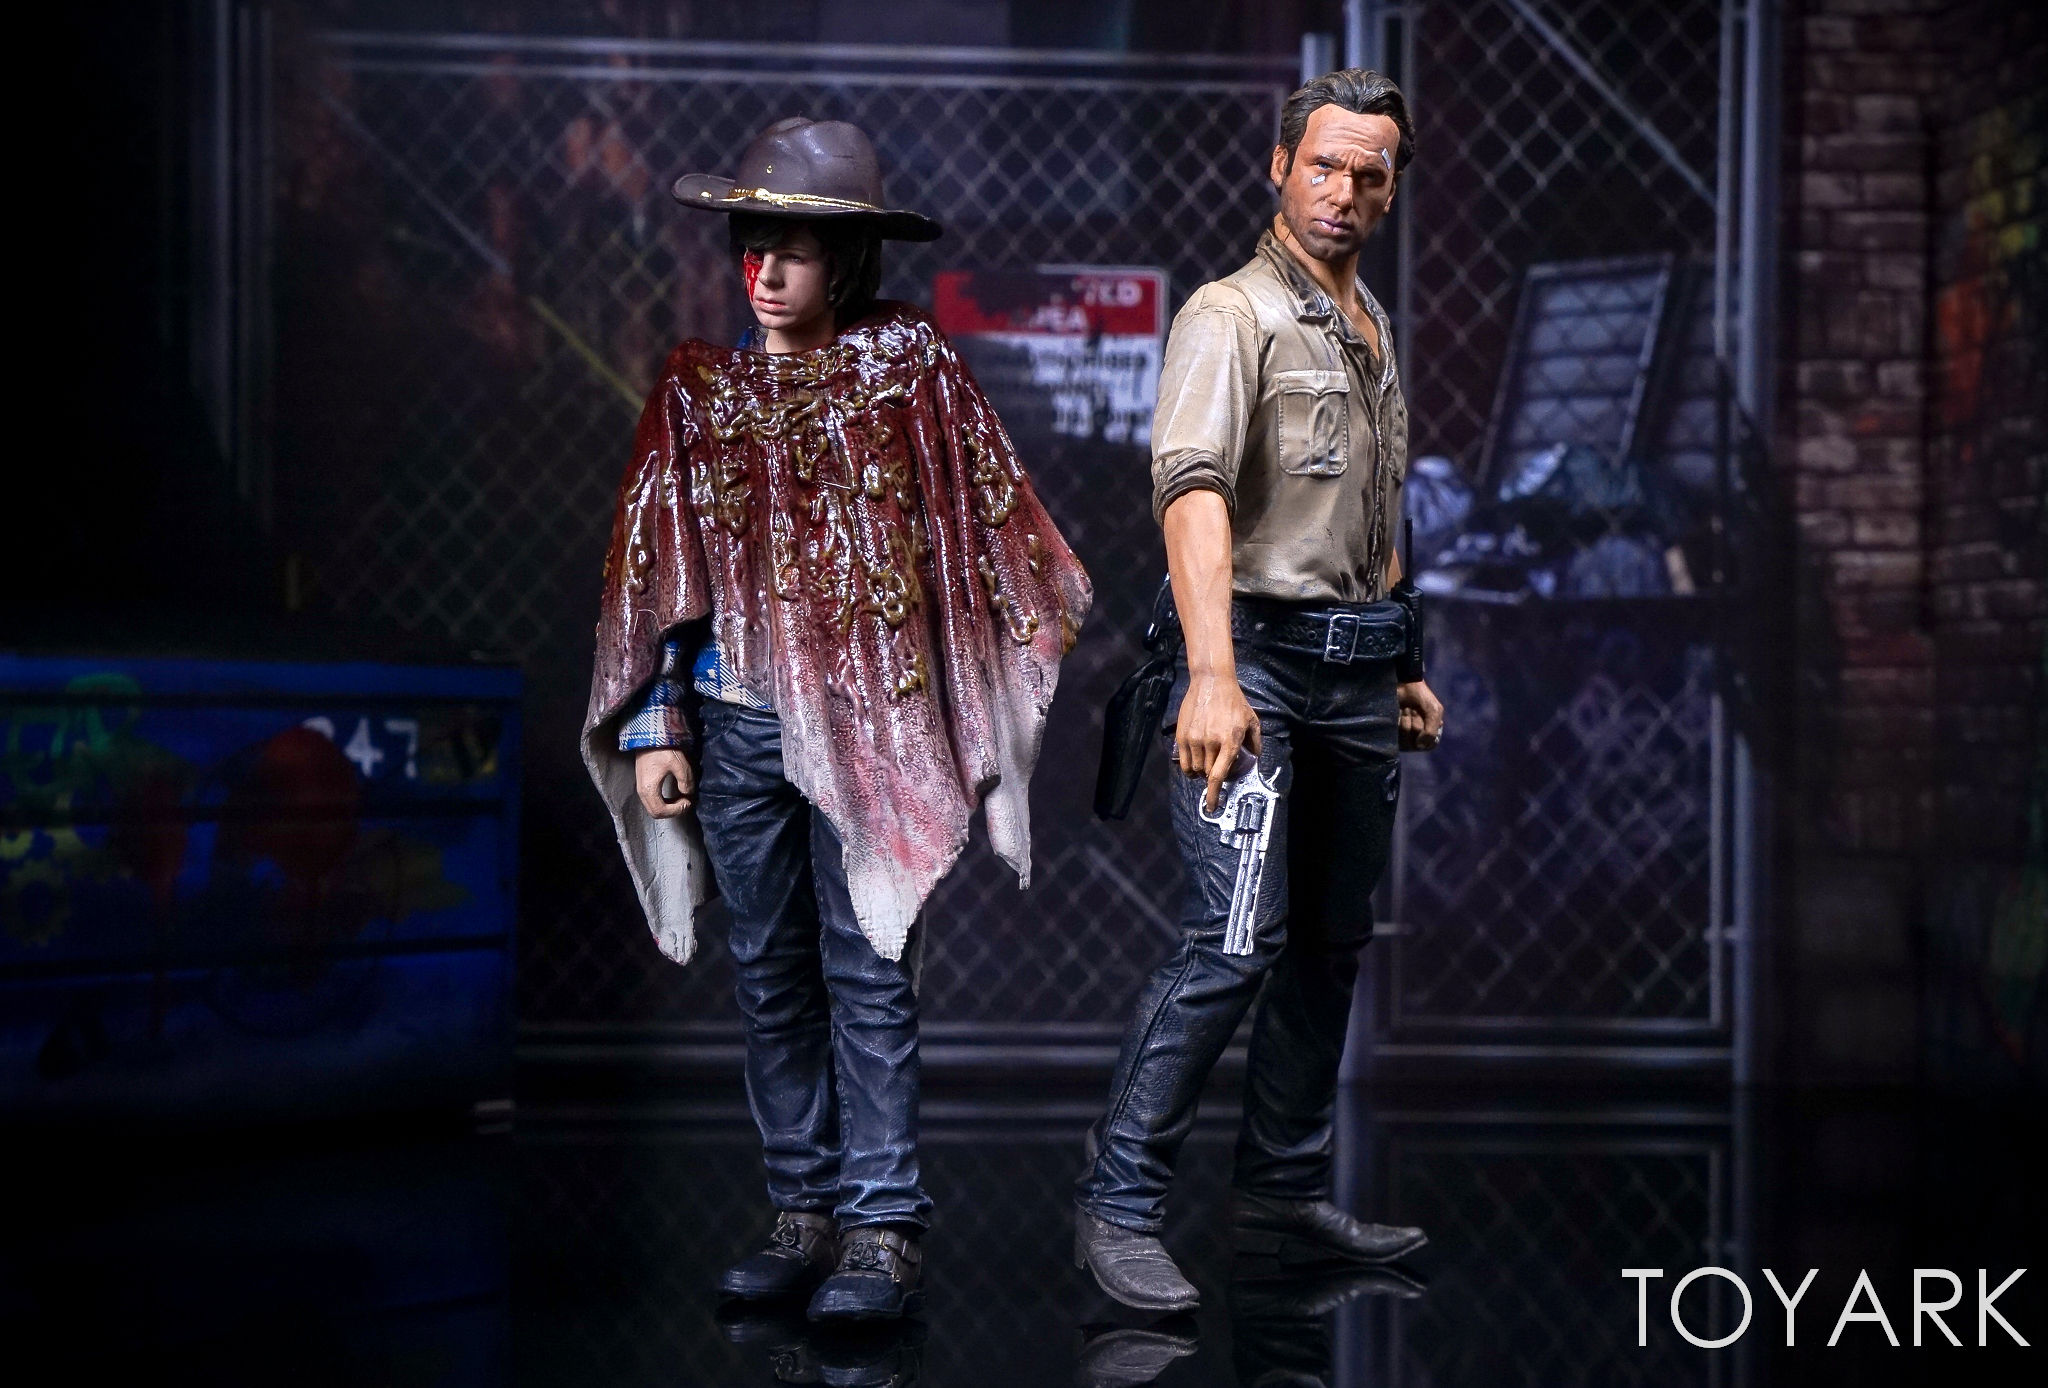 http://news.toyark.com/wp-content/uploads/sites/4/2017/03/McFarlane-Color-Tops-Walking-Dead-Carl-Grimes-032.jpg